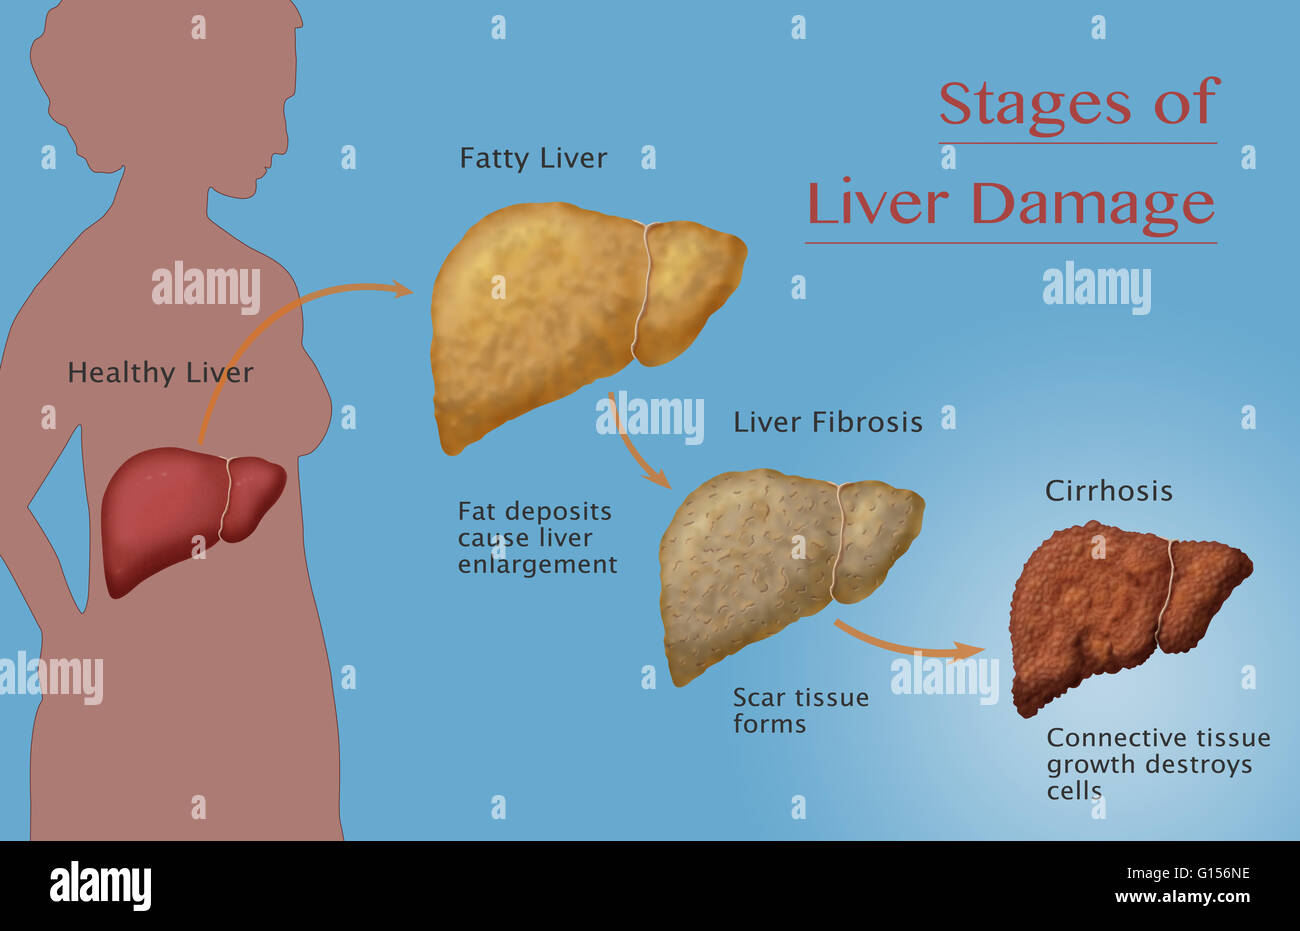 hight resolution of stages of liver damage due to alcoholism first alcohol compromises the liver causing large deposits of fat to develop and enlarging the liver fatty liver